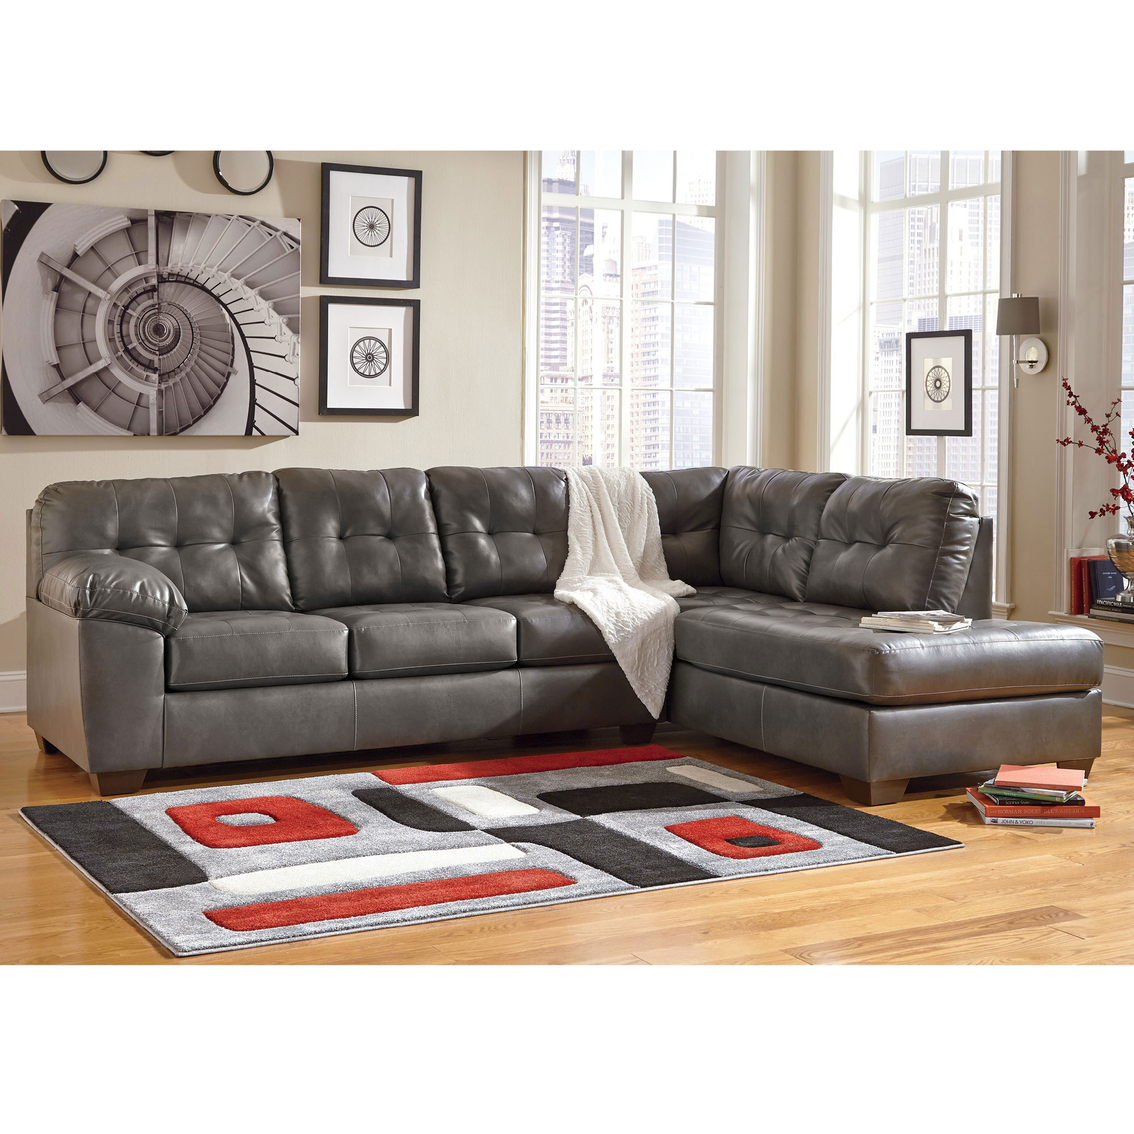 2 pc laf sectional sofa faux leather 3 seater bed fold down table signature design by ashley alliston durablend